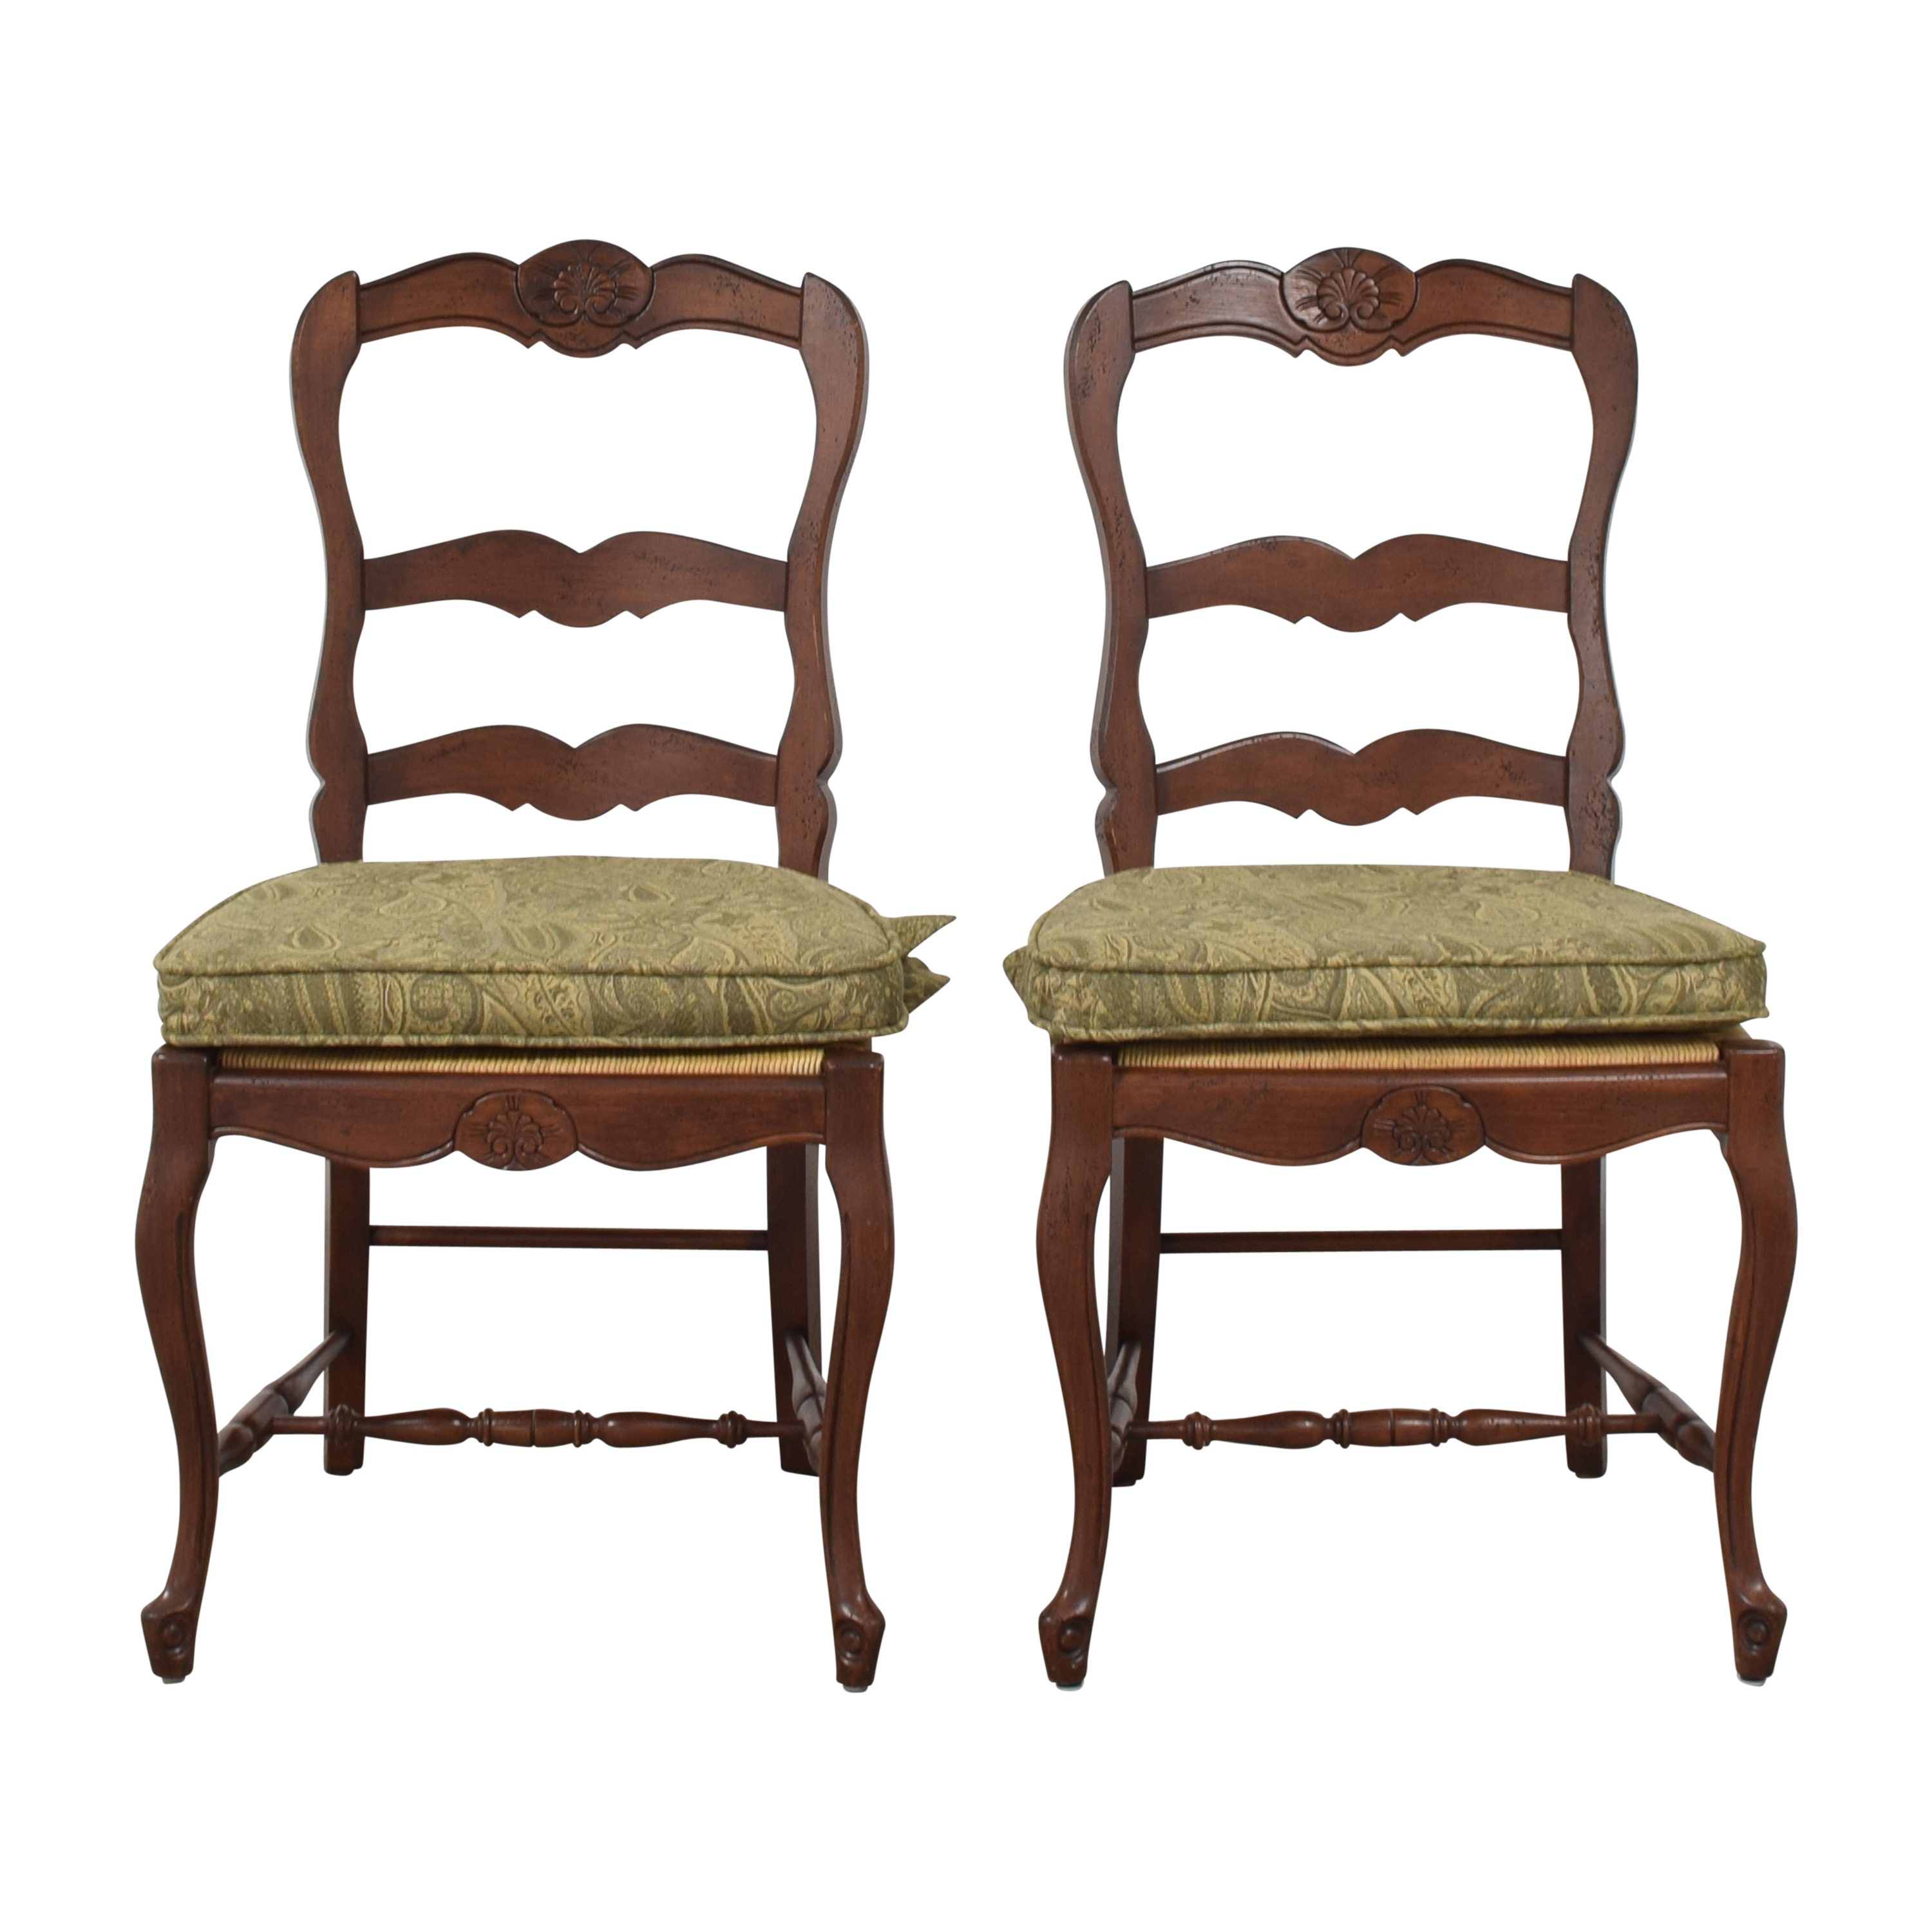 French Country Cane Seat Dining Chairs with Cushions discount